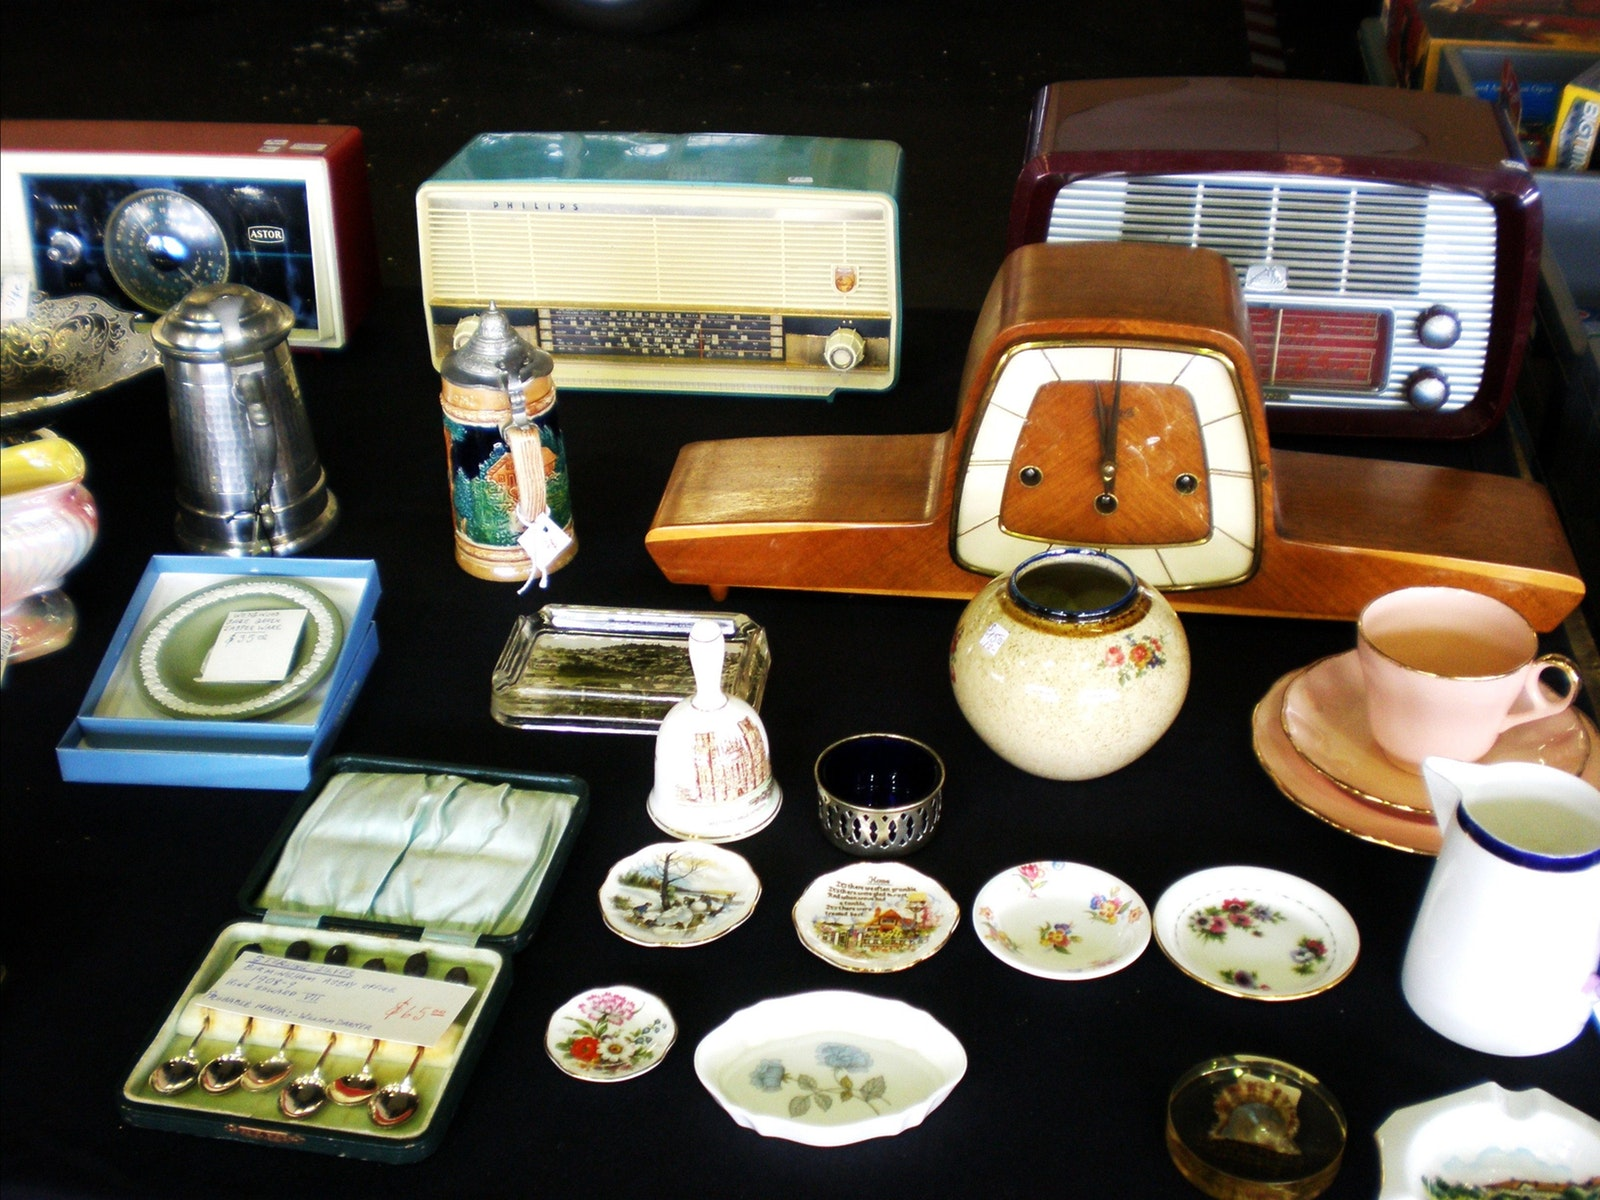 China, clocks, vintage radios